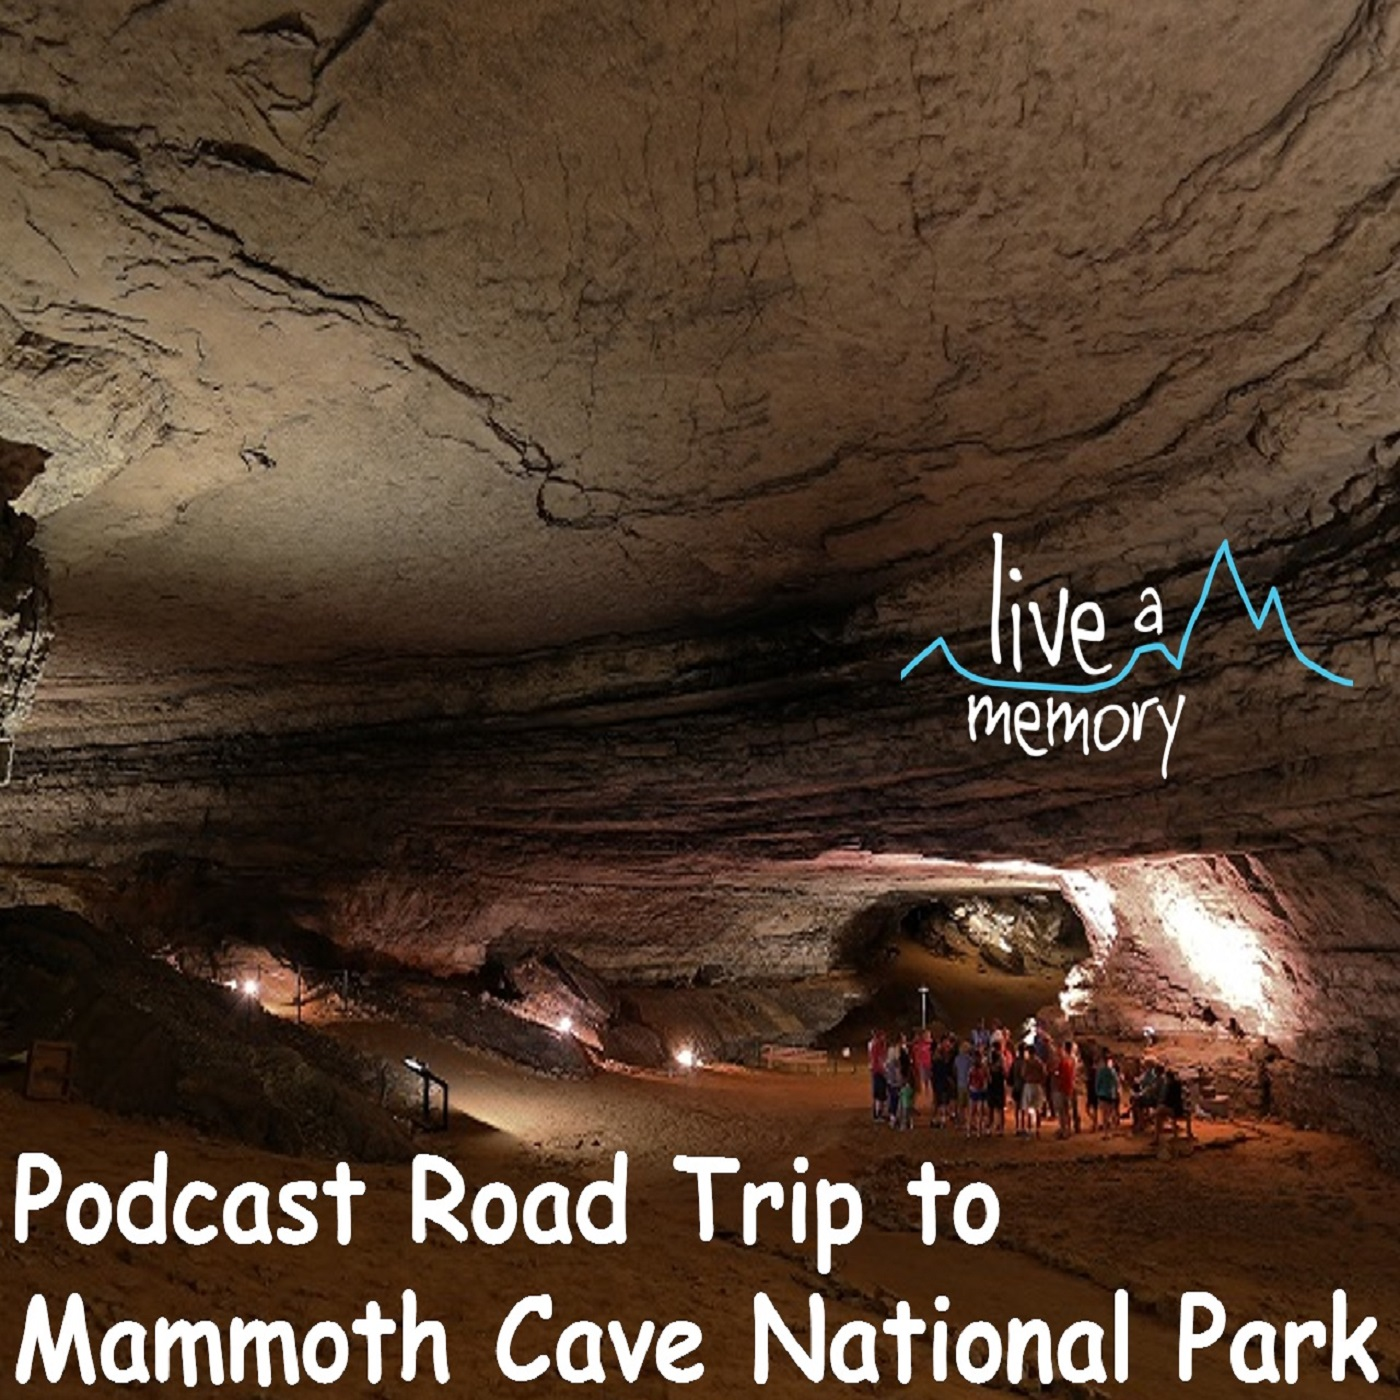 Mammoth Cave National Park – Live a Memory Podcast Road Trip